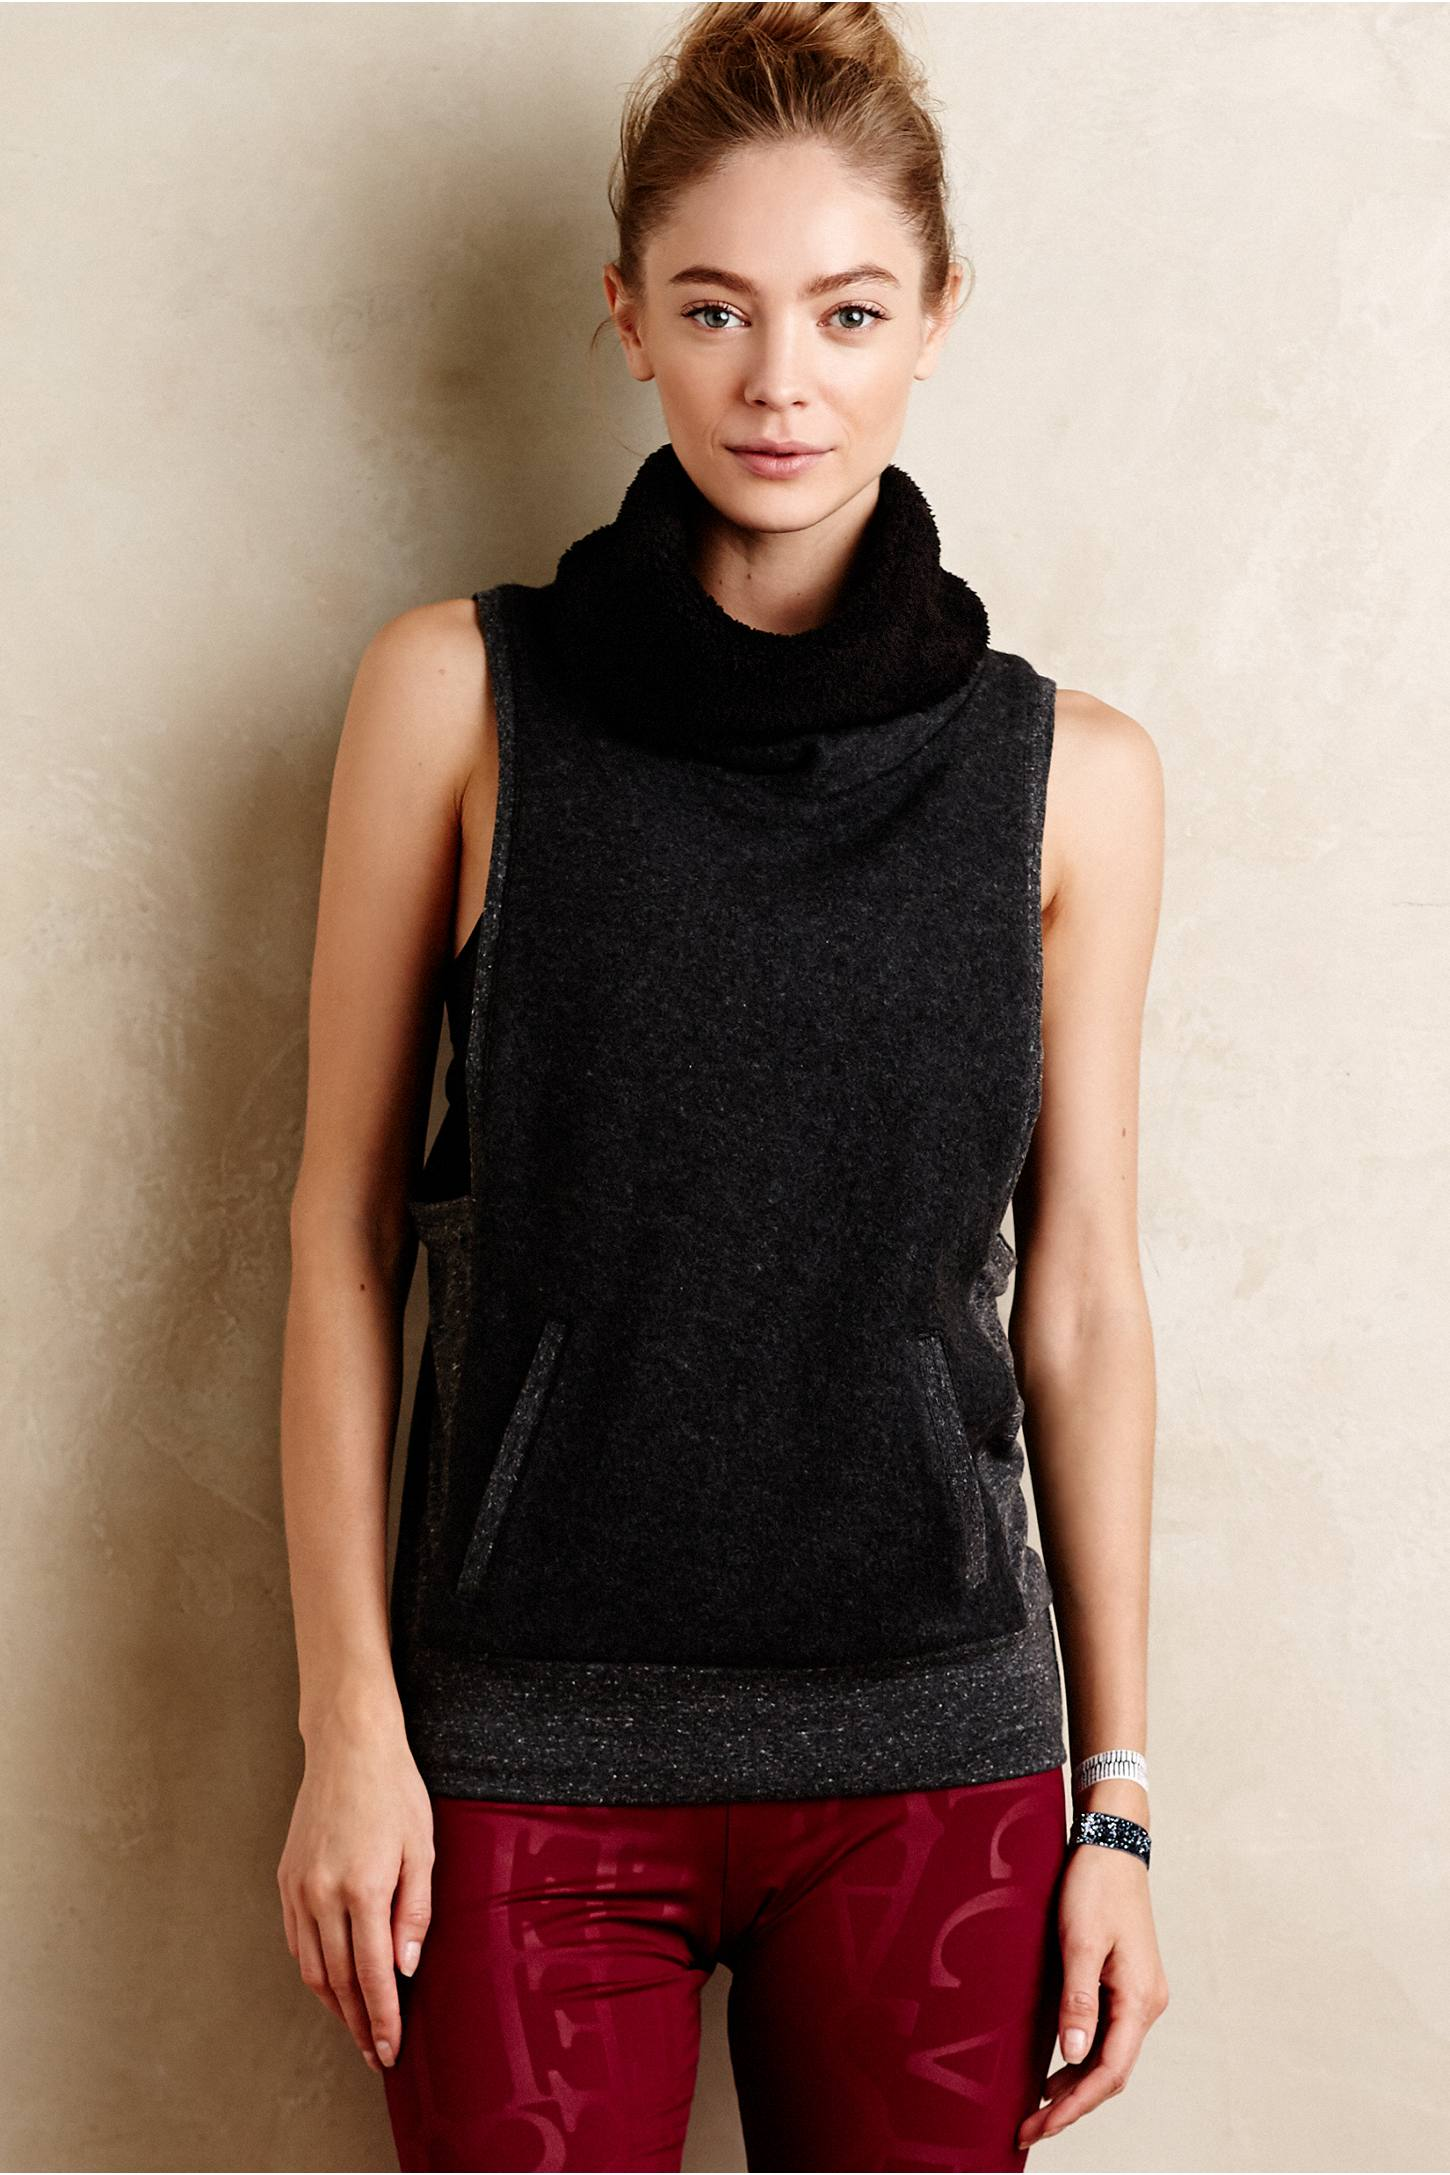 Turtleneck Studio Vest